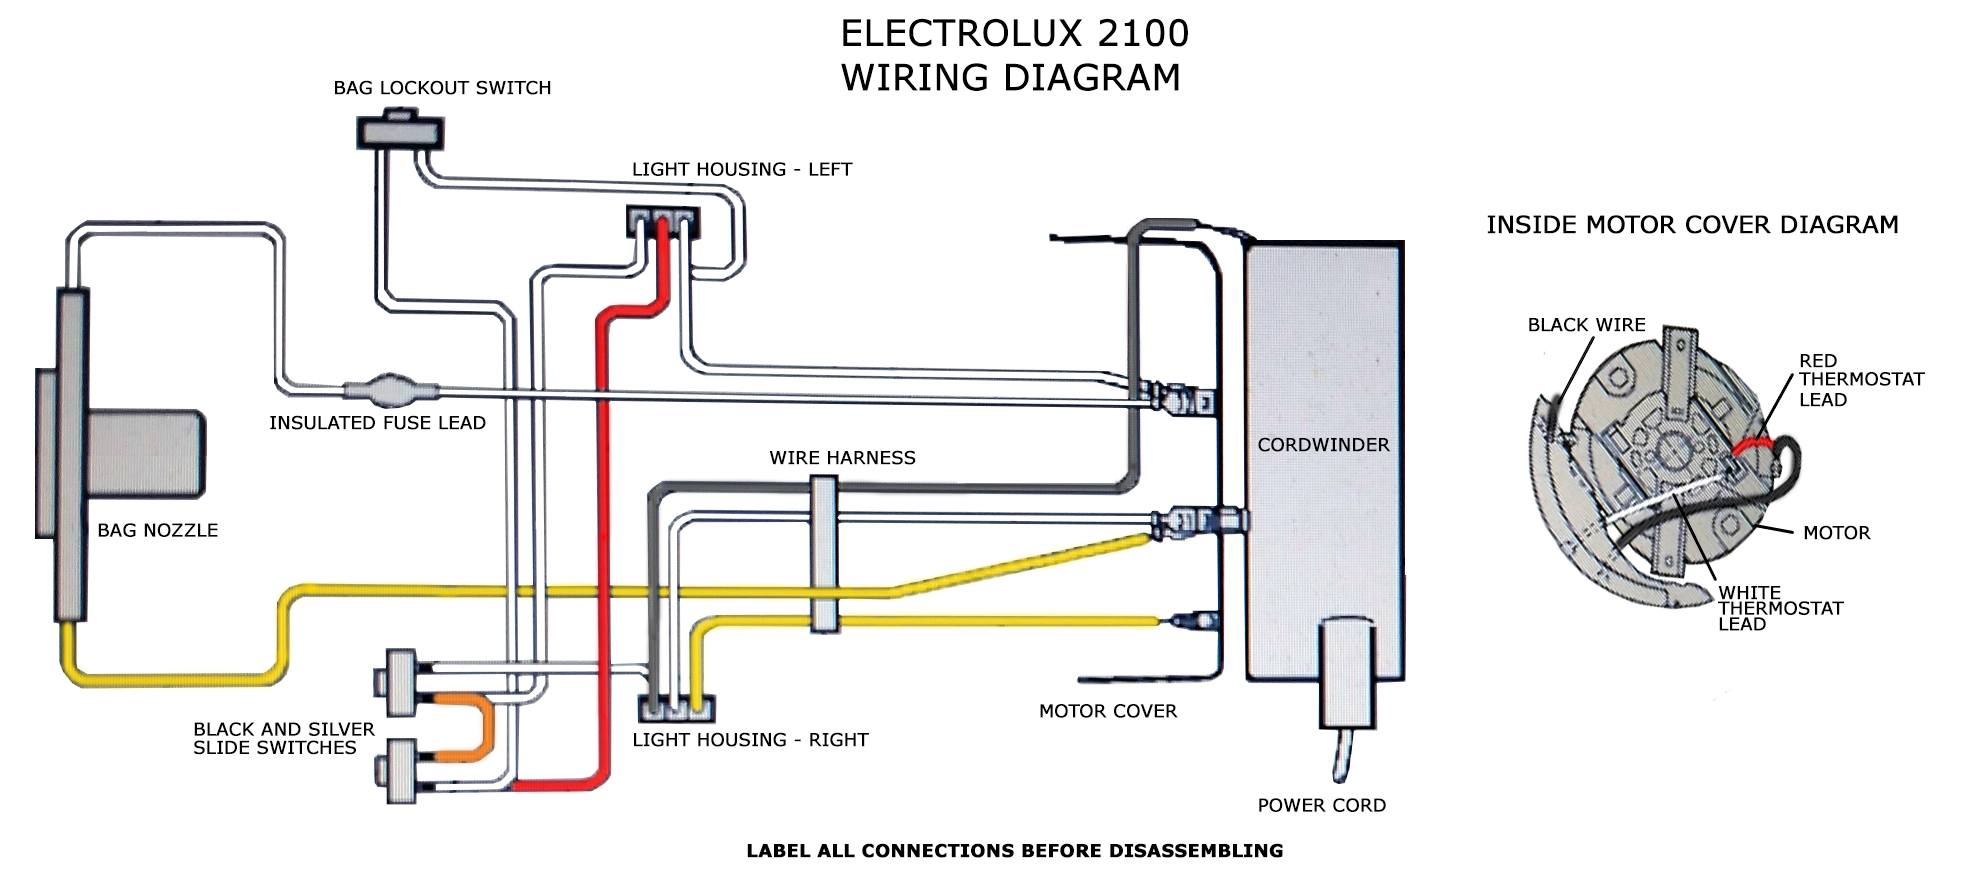 electrolux 2100 wiring diagram Electrolux Guardian Hose Wiring Schematic electrolux 2100 wiring diagram Whirlpool Appliances Wiring-Diagram Electrolux Vacuum Cleaner Repair Diagram Peavey Raptor Wiring-Diagram